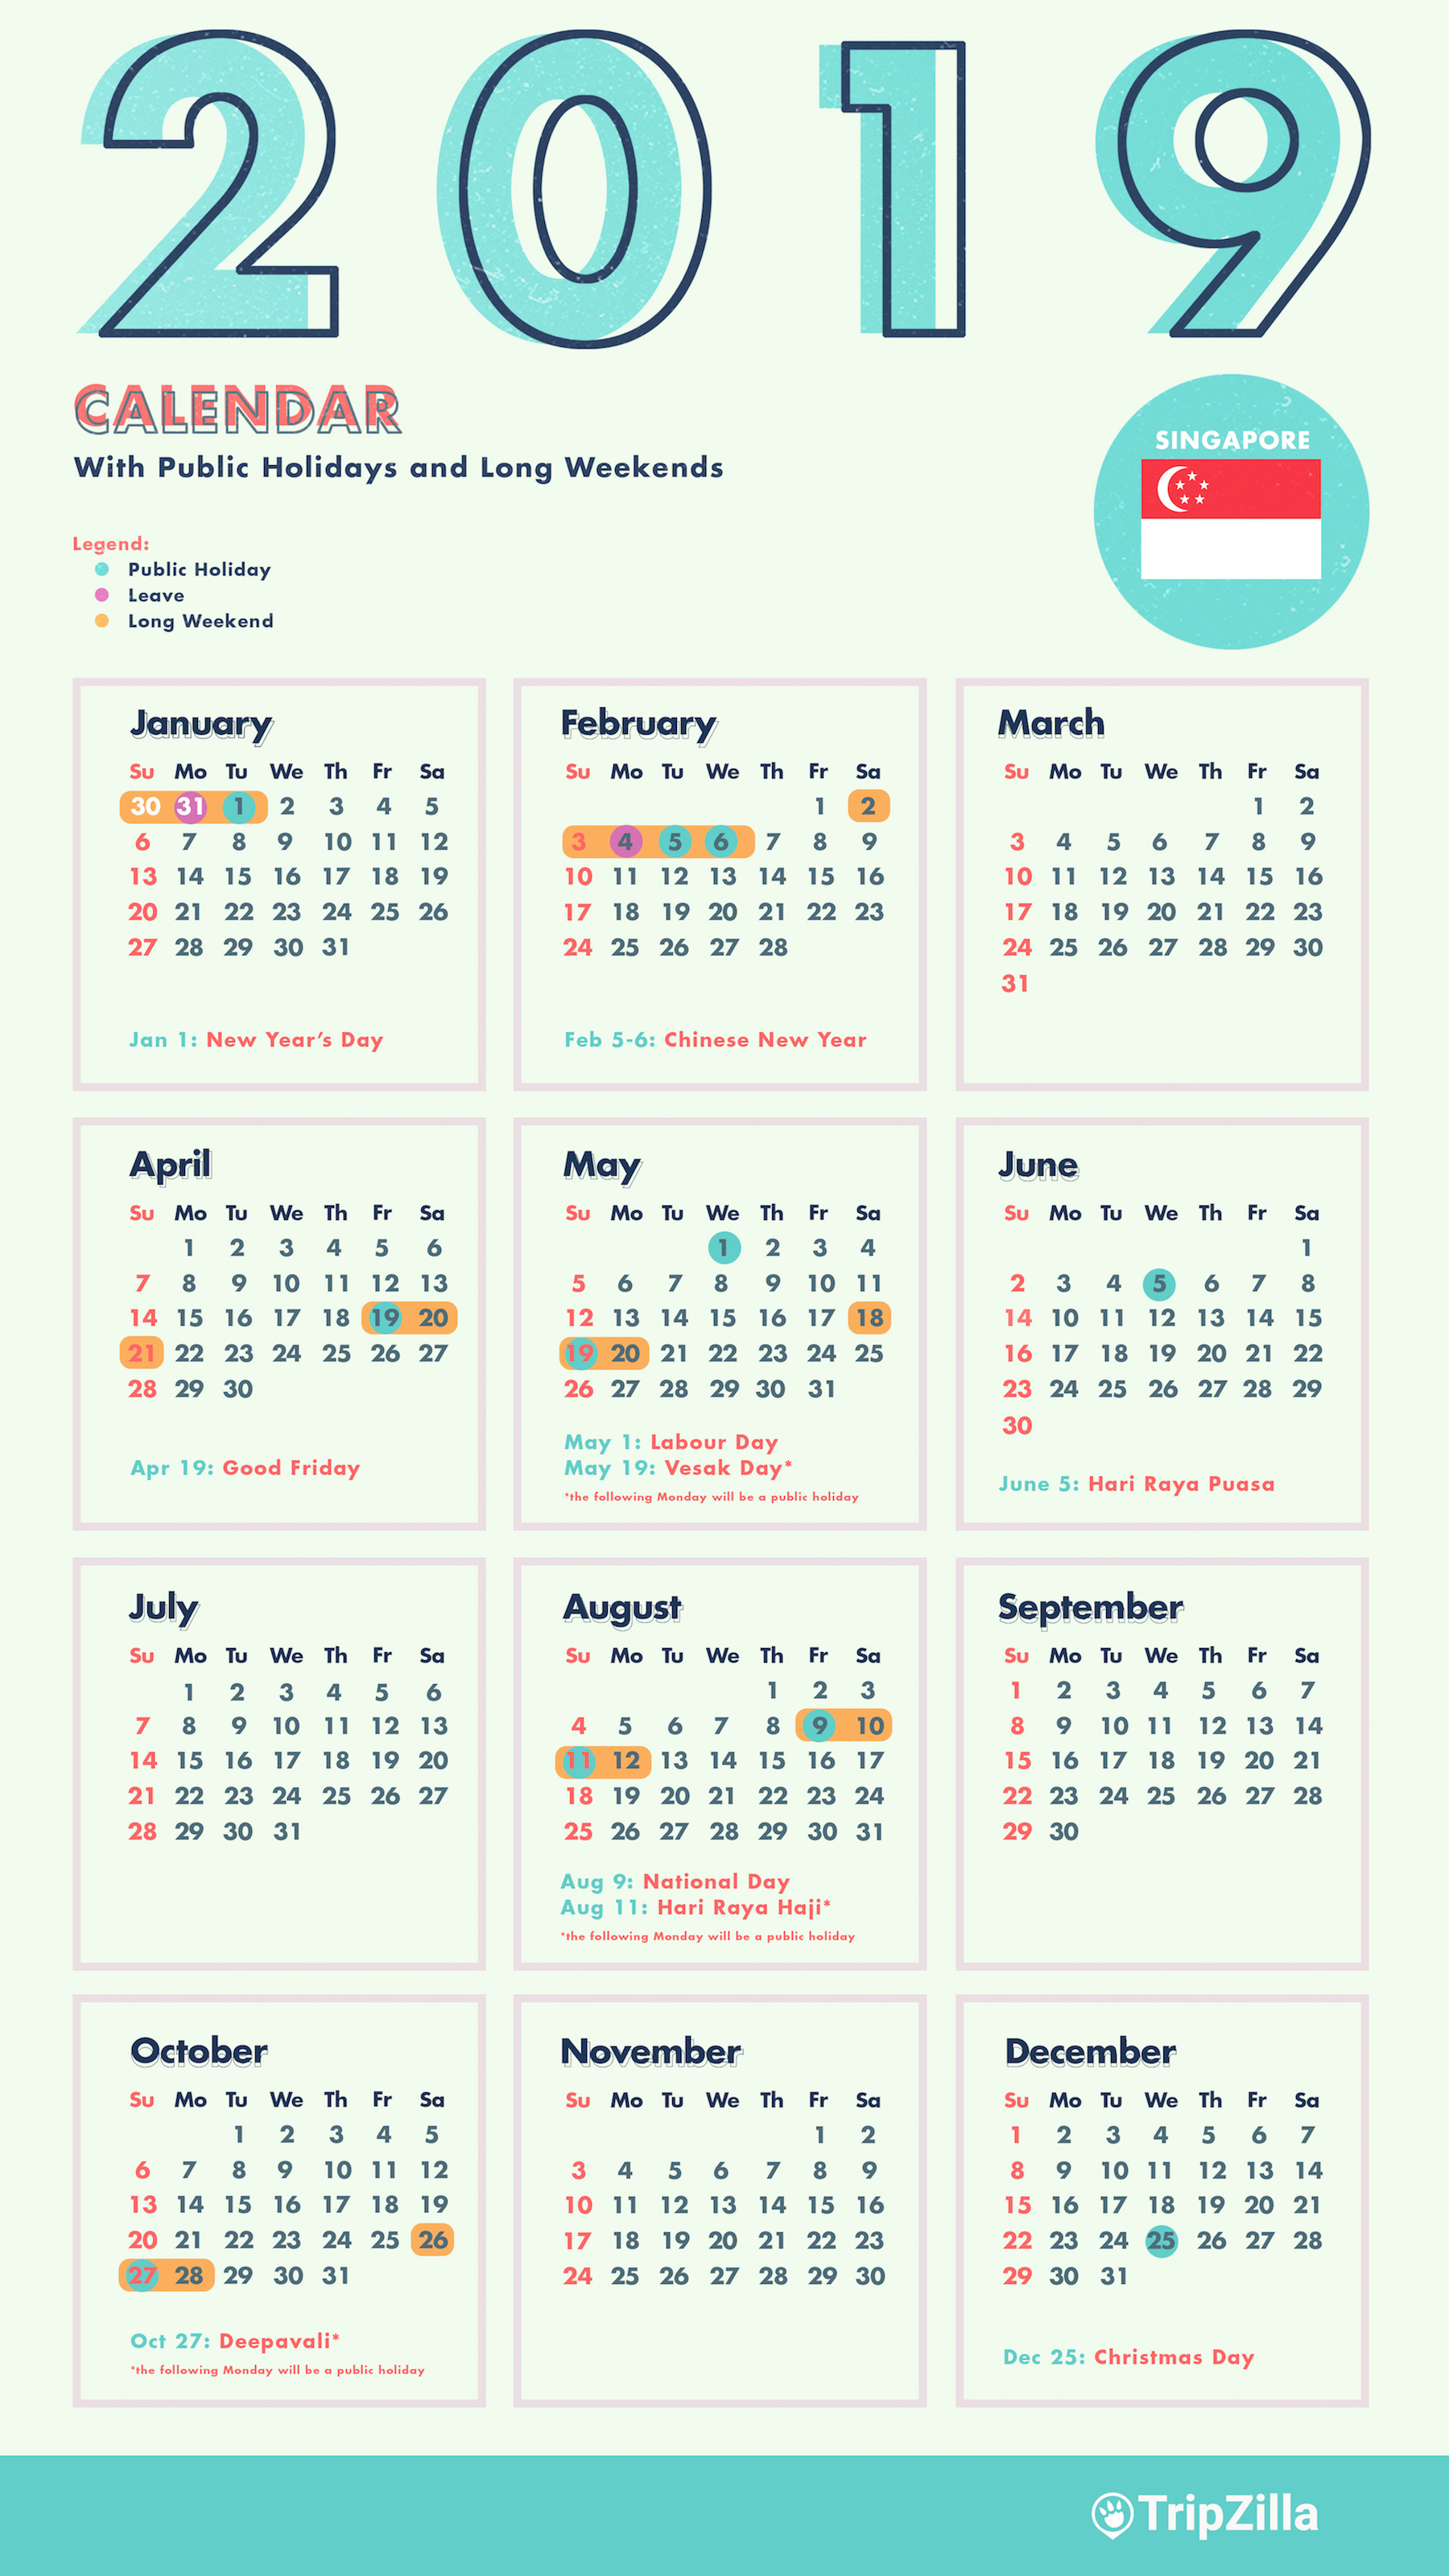 Chinese New Year 2019 Calendar With 6 Long Weekends In Singapore Bonus Cheatsheet